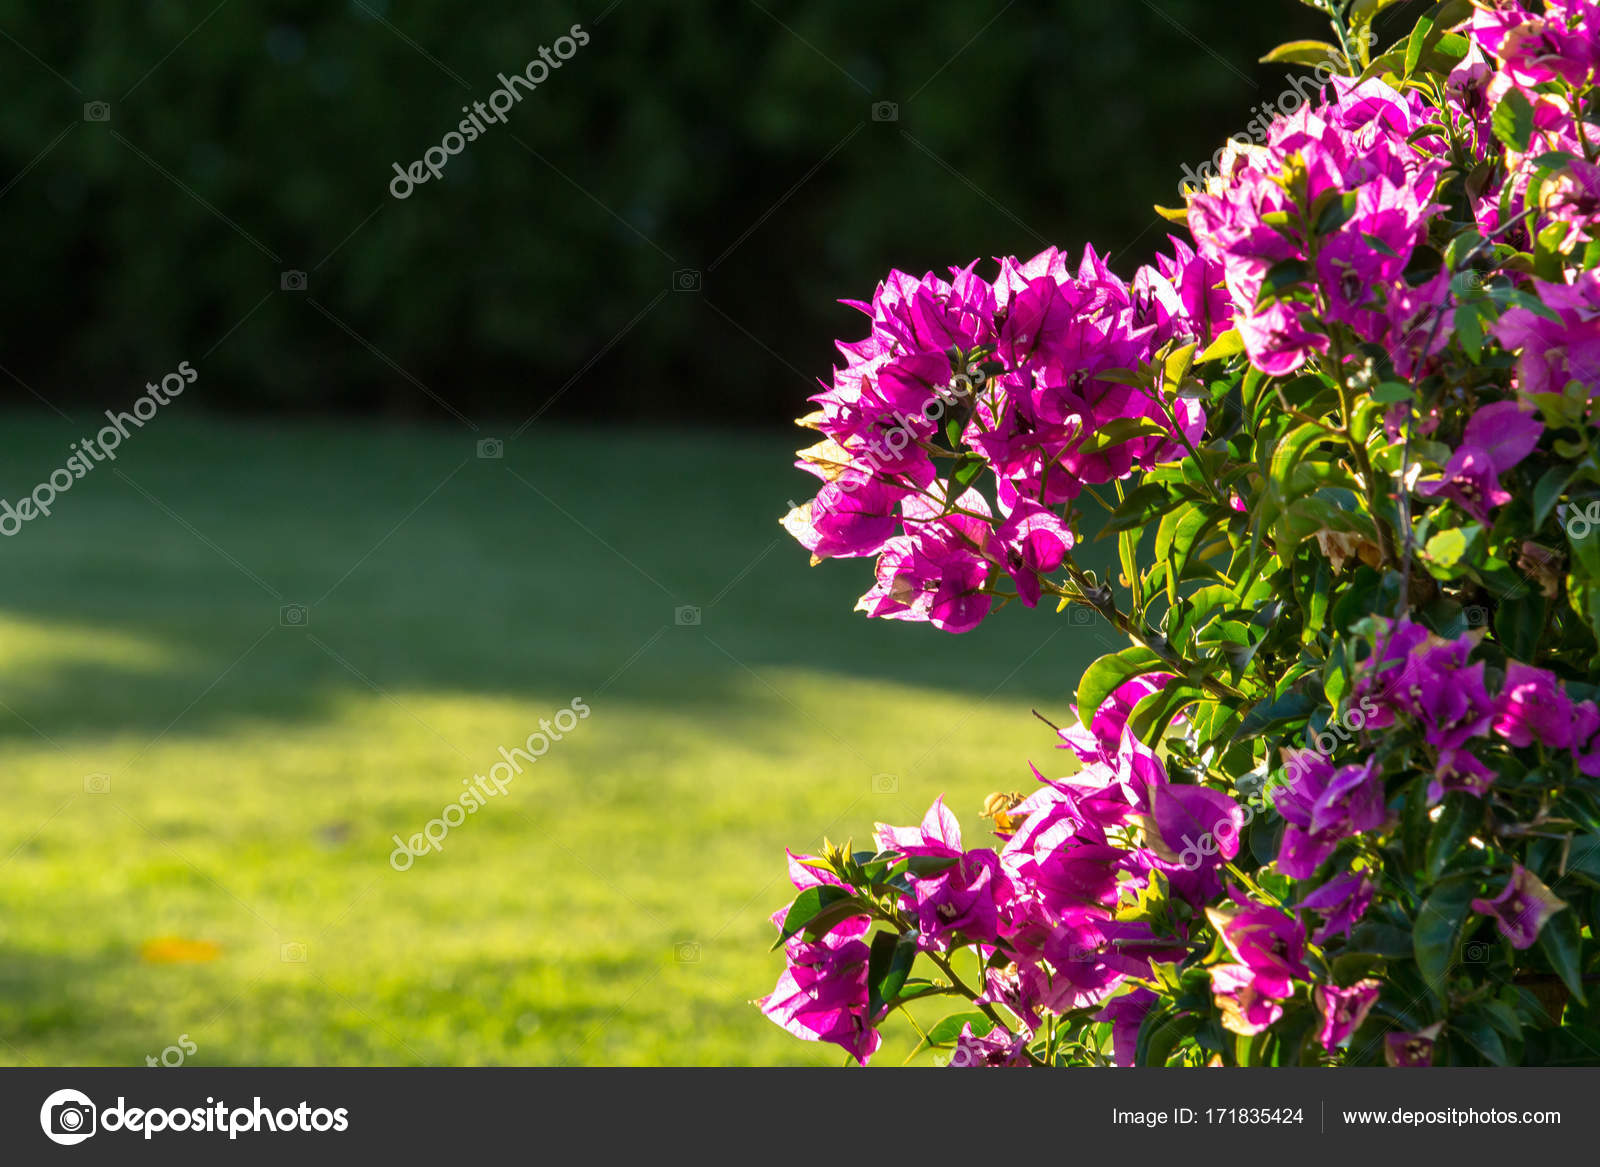 Little pink flowers on a bush close up stock photo cahkt 171835424 little pink flowers on a bush close up stock photo mightylinksfo